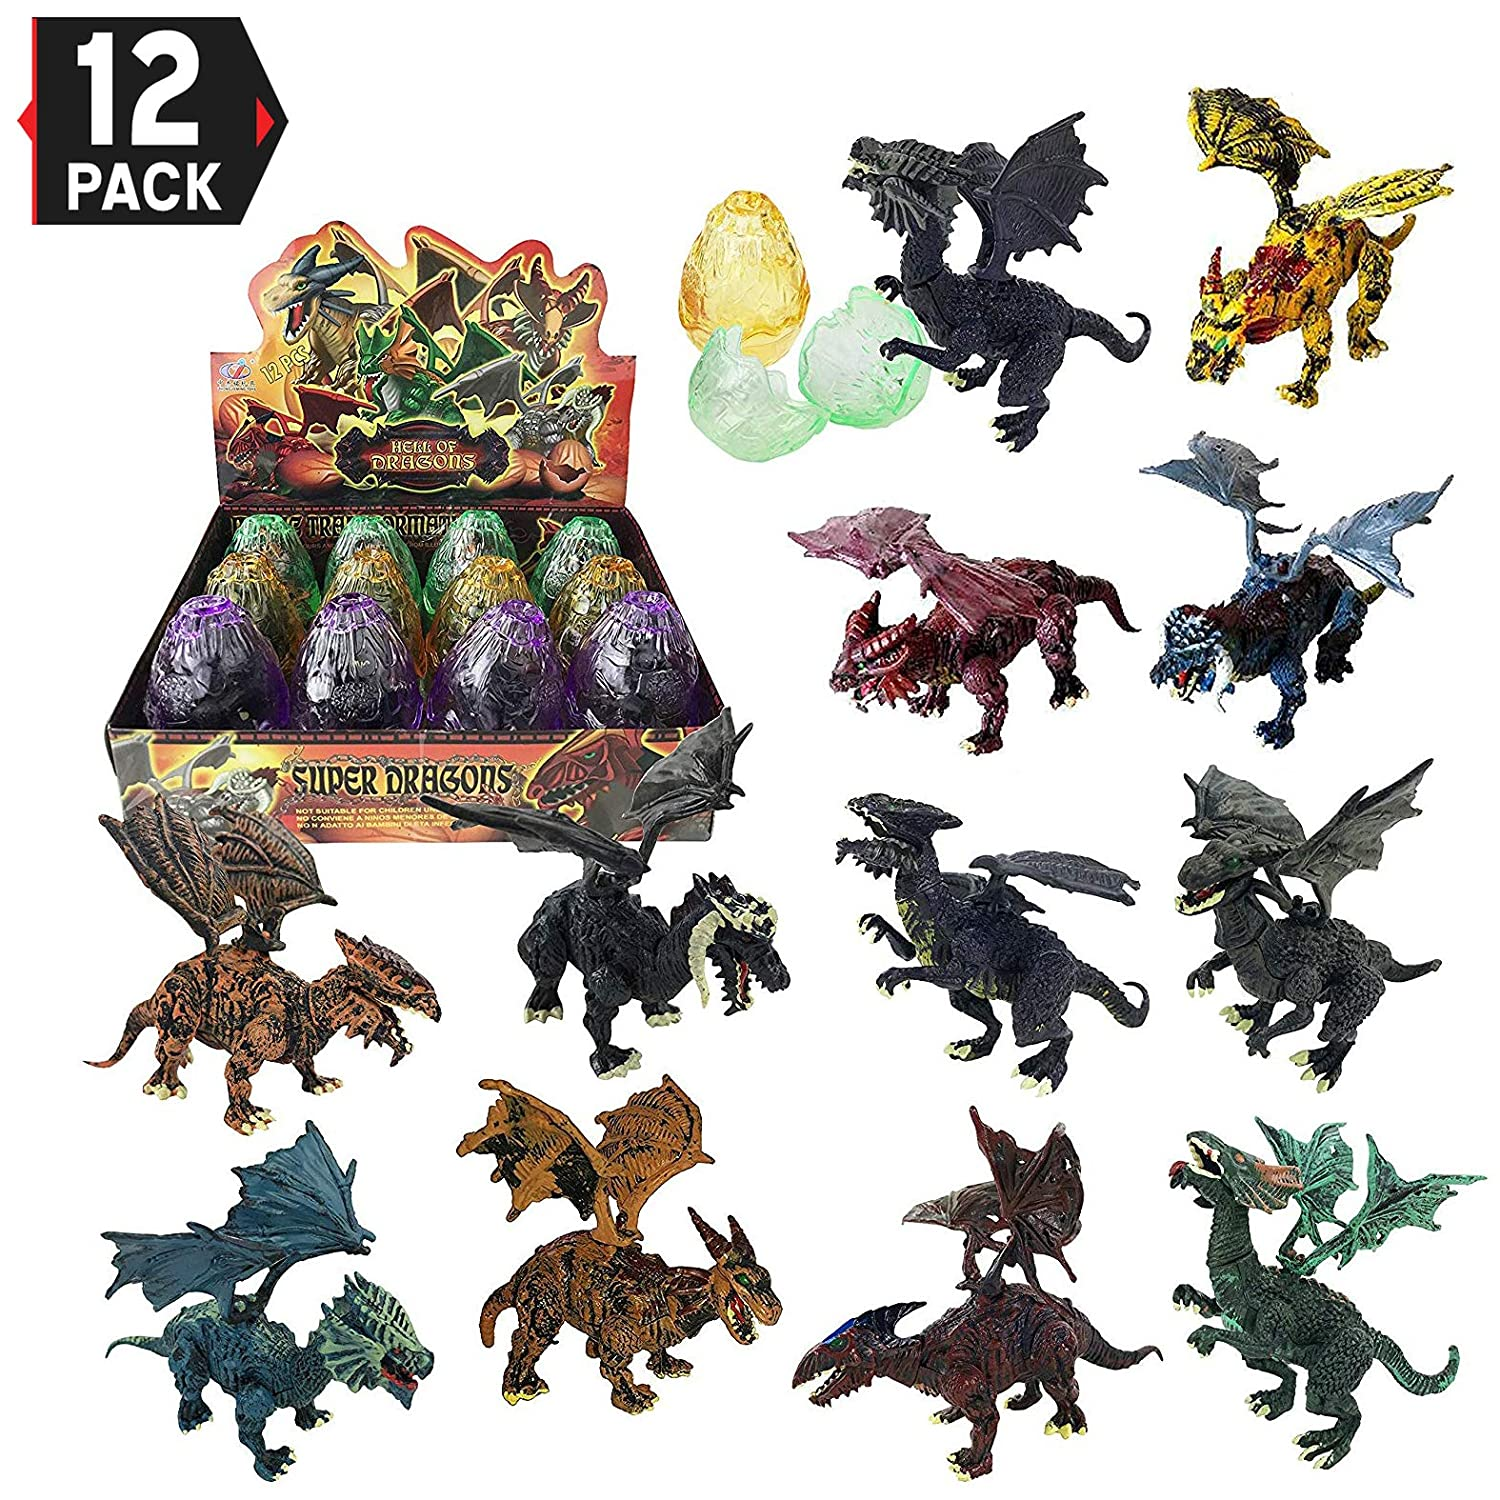 Liberty Imports 12 Pack Deluxe 3D Action Figures Realistic Figurine Puzzles in Jurassic Hatching Eggs